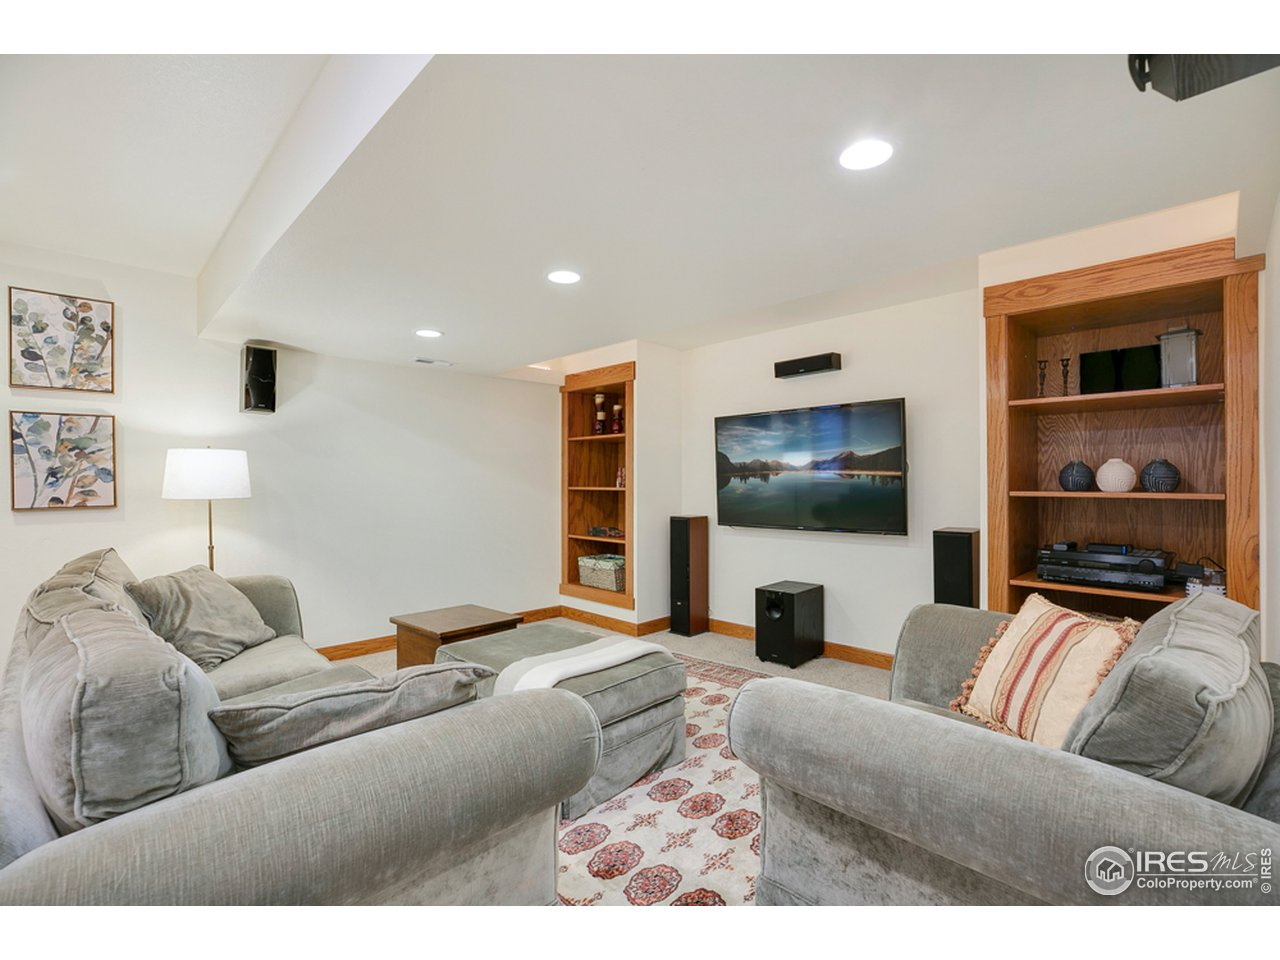 Media room with great built in book cases and equipped with surround sound